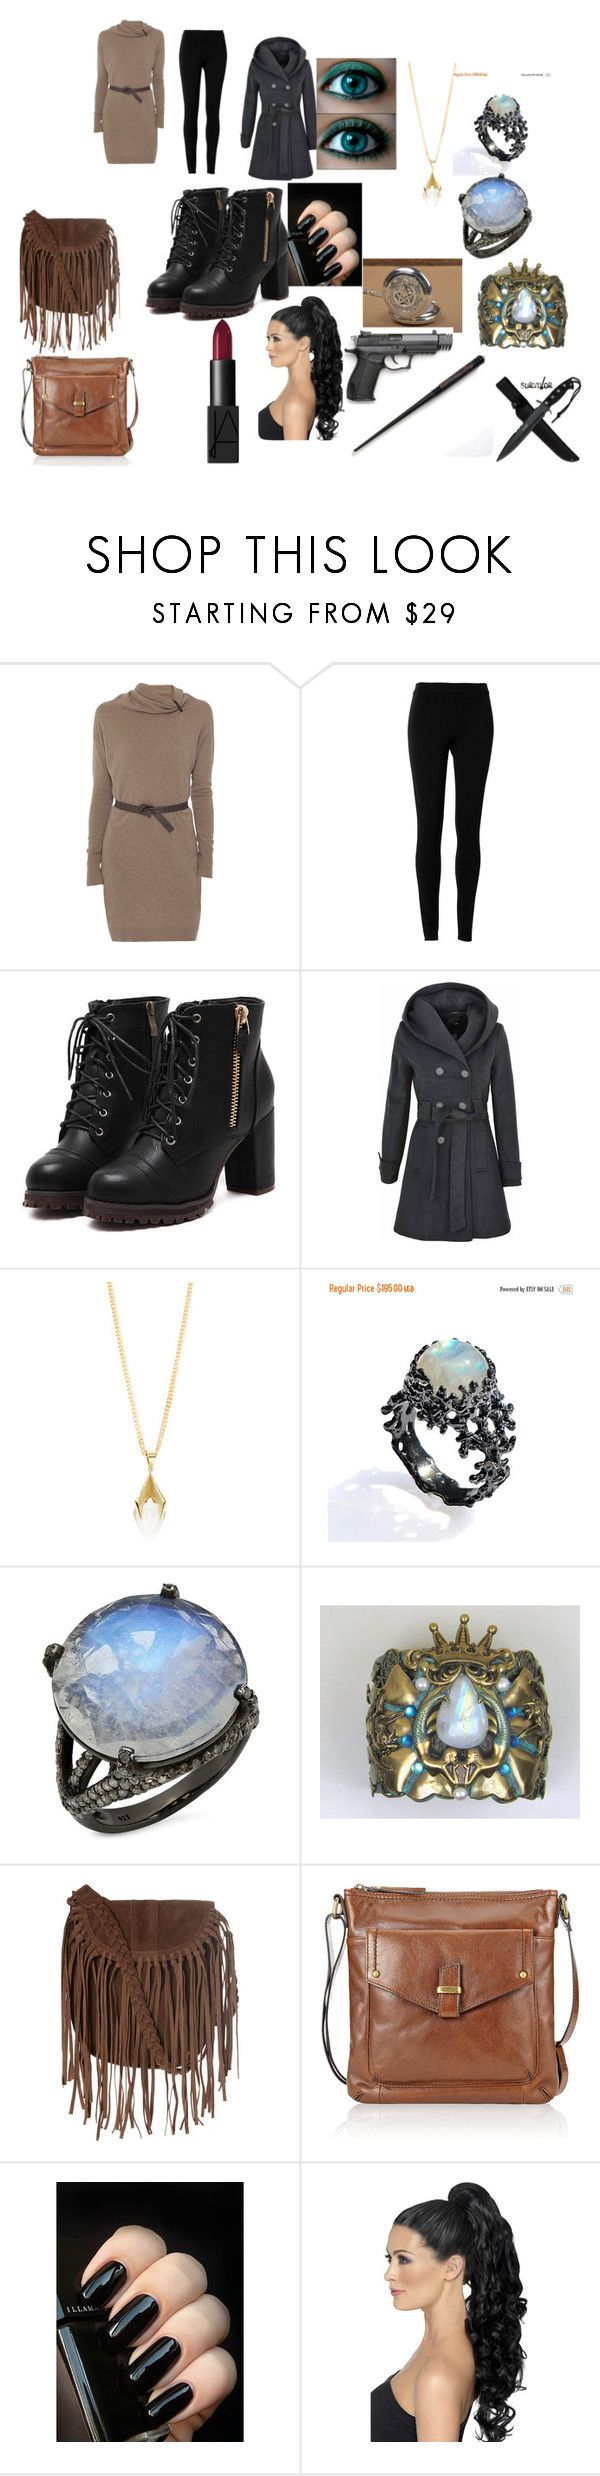 """Fem!harry"" by moonyandsunny-jm on Polyvore featuring Rani Arabella, Max Studio, Dean Davidson, Bavna, Glamorous, M&S Collection and NARS Cosmetics"